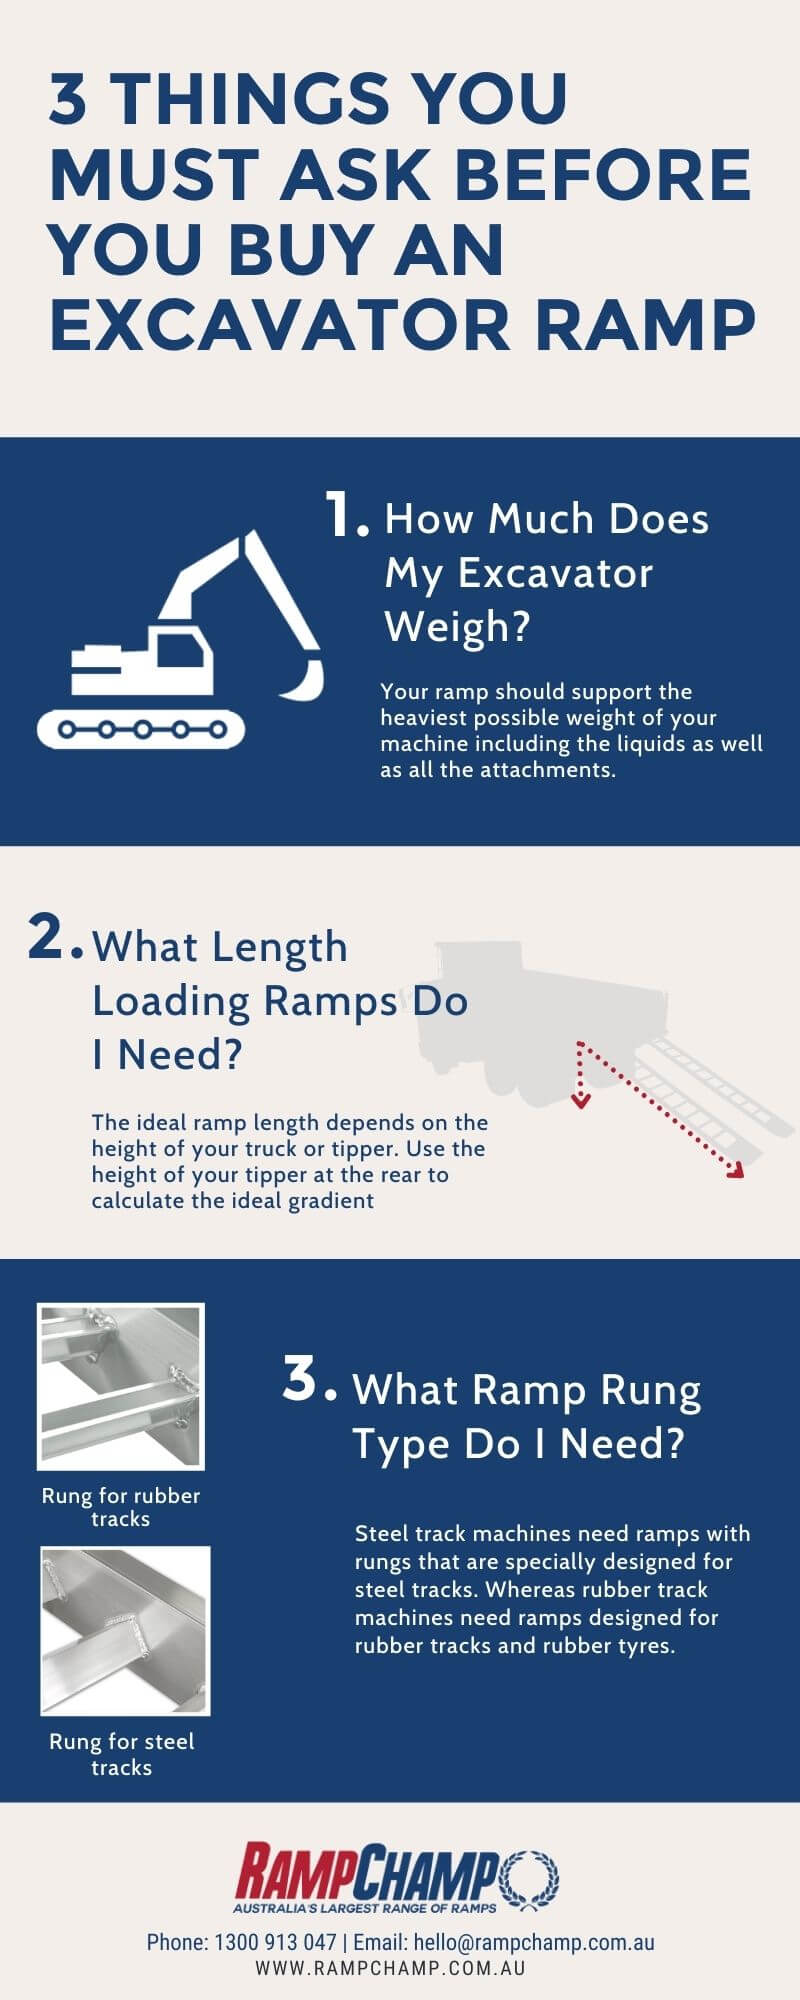 Infographic on what to ask before buying excavator ramps - Ramp Champ